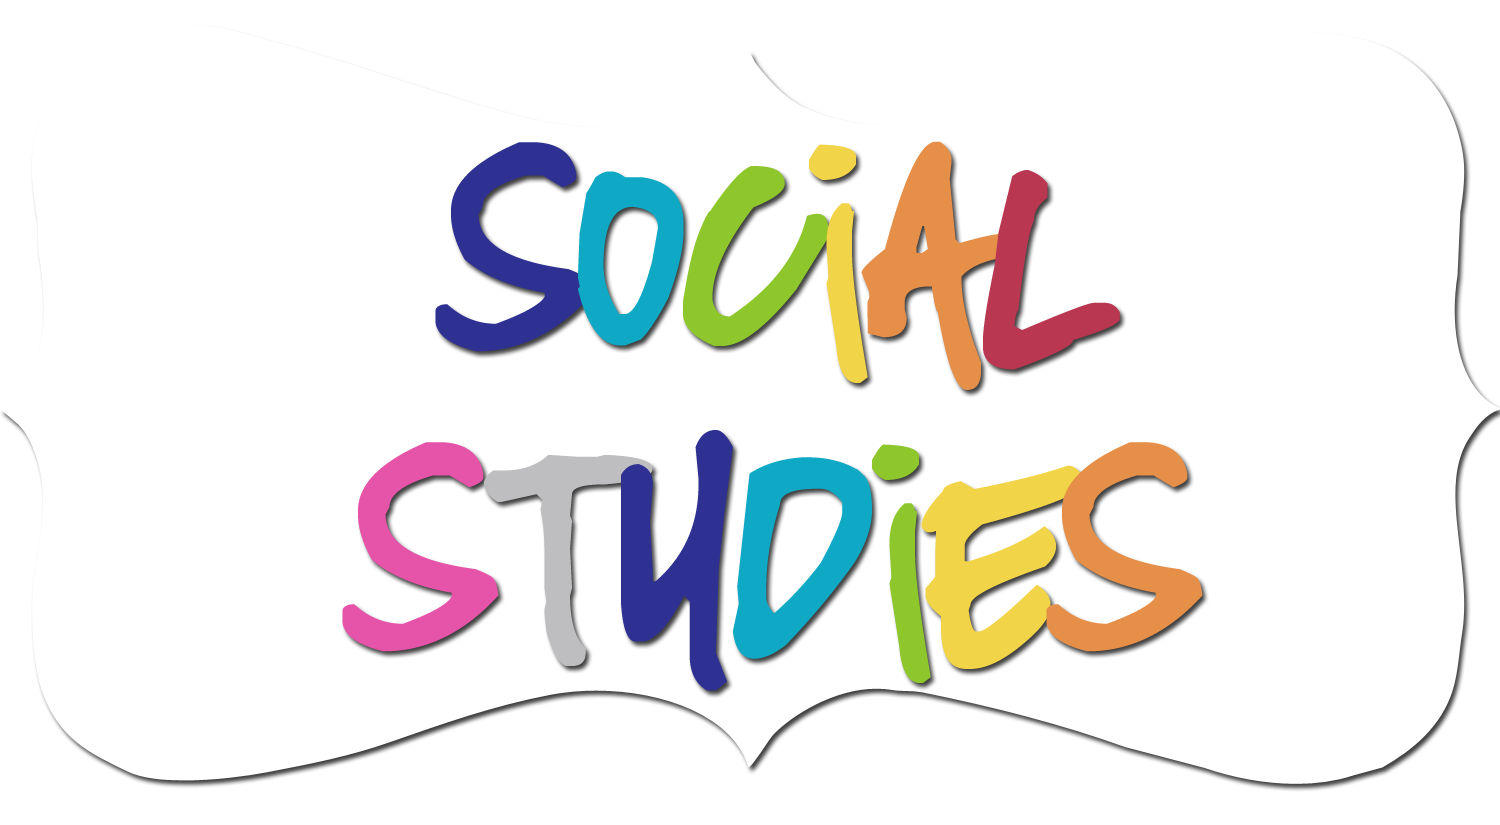 Egypt clipart social science, Picture #989805 egypt clipart social science